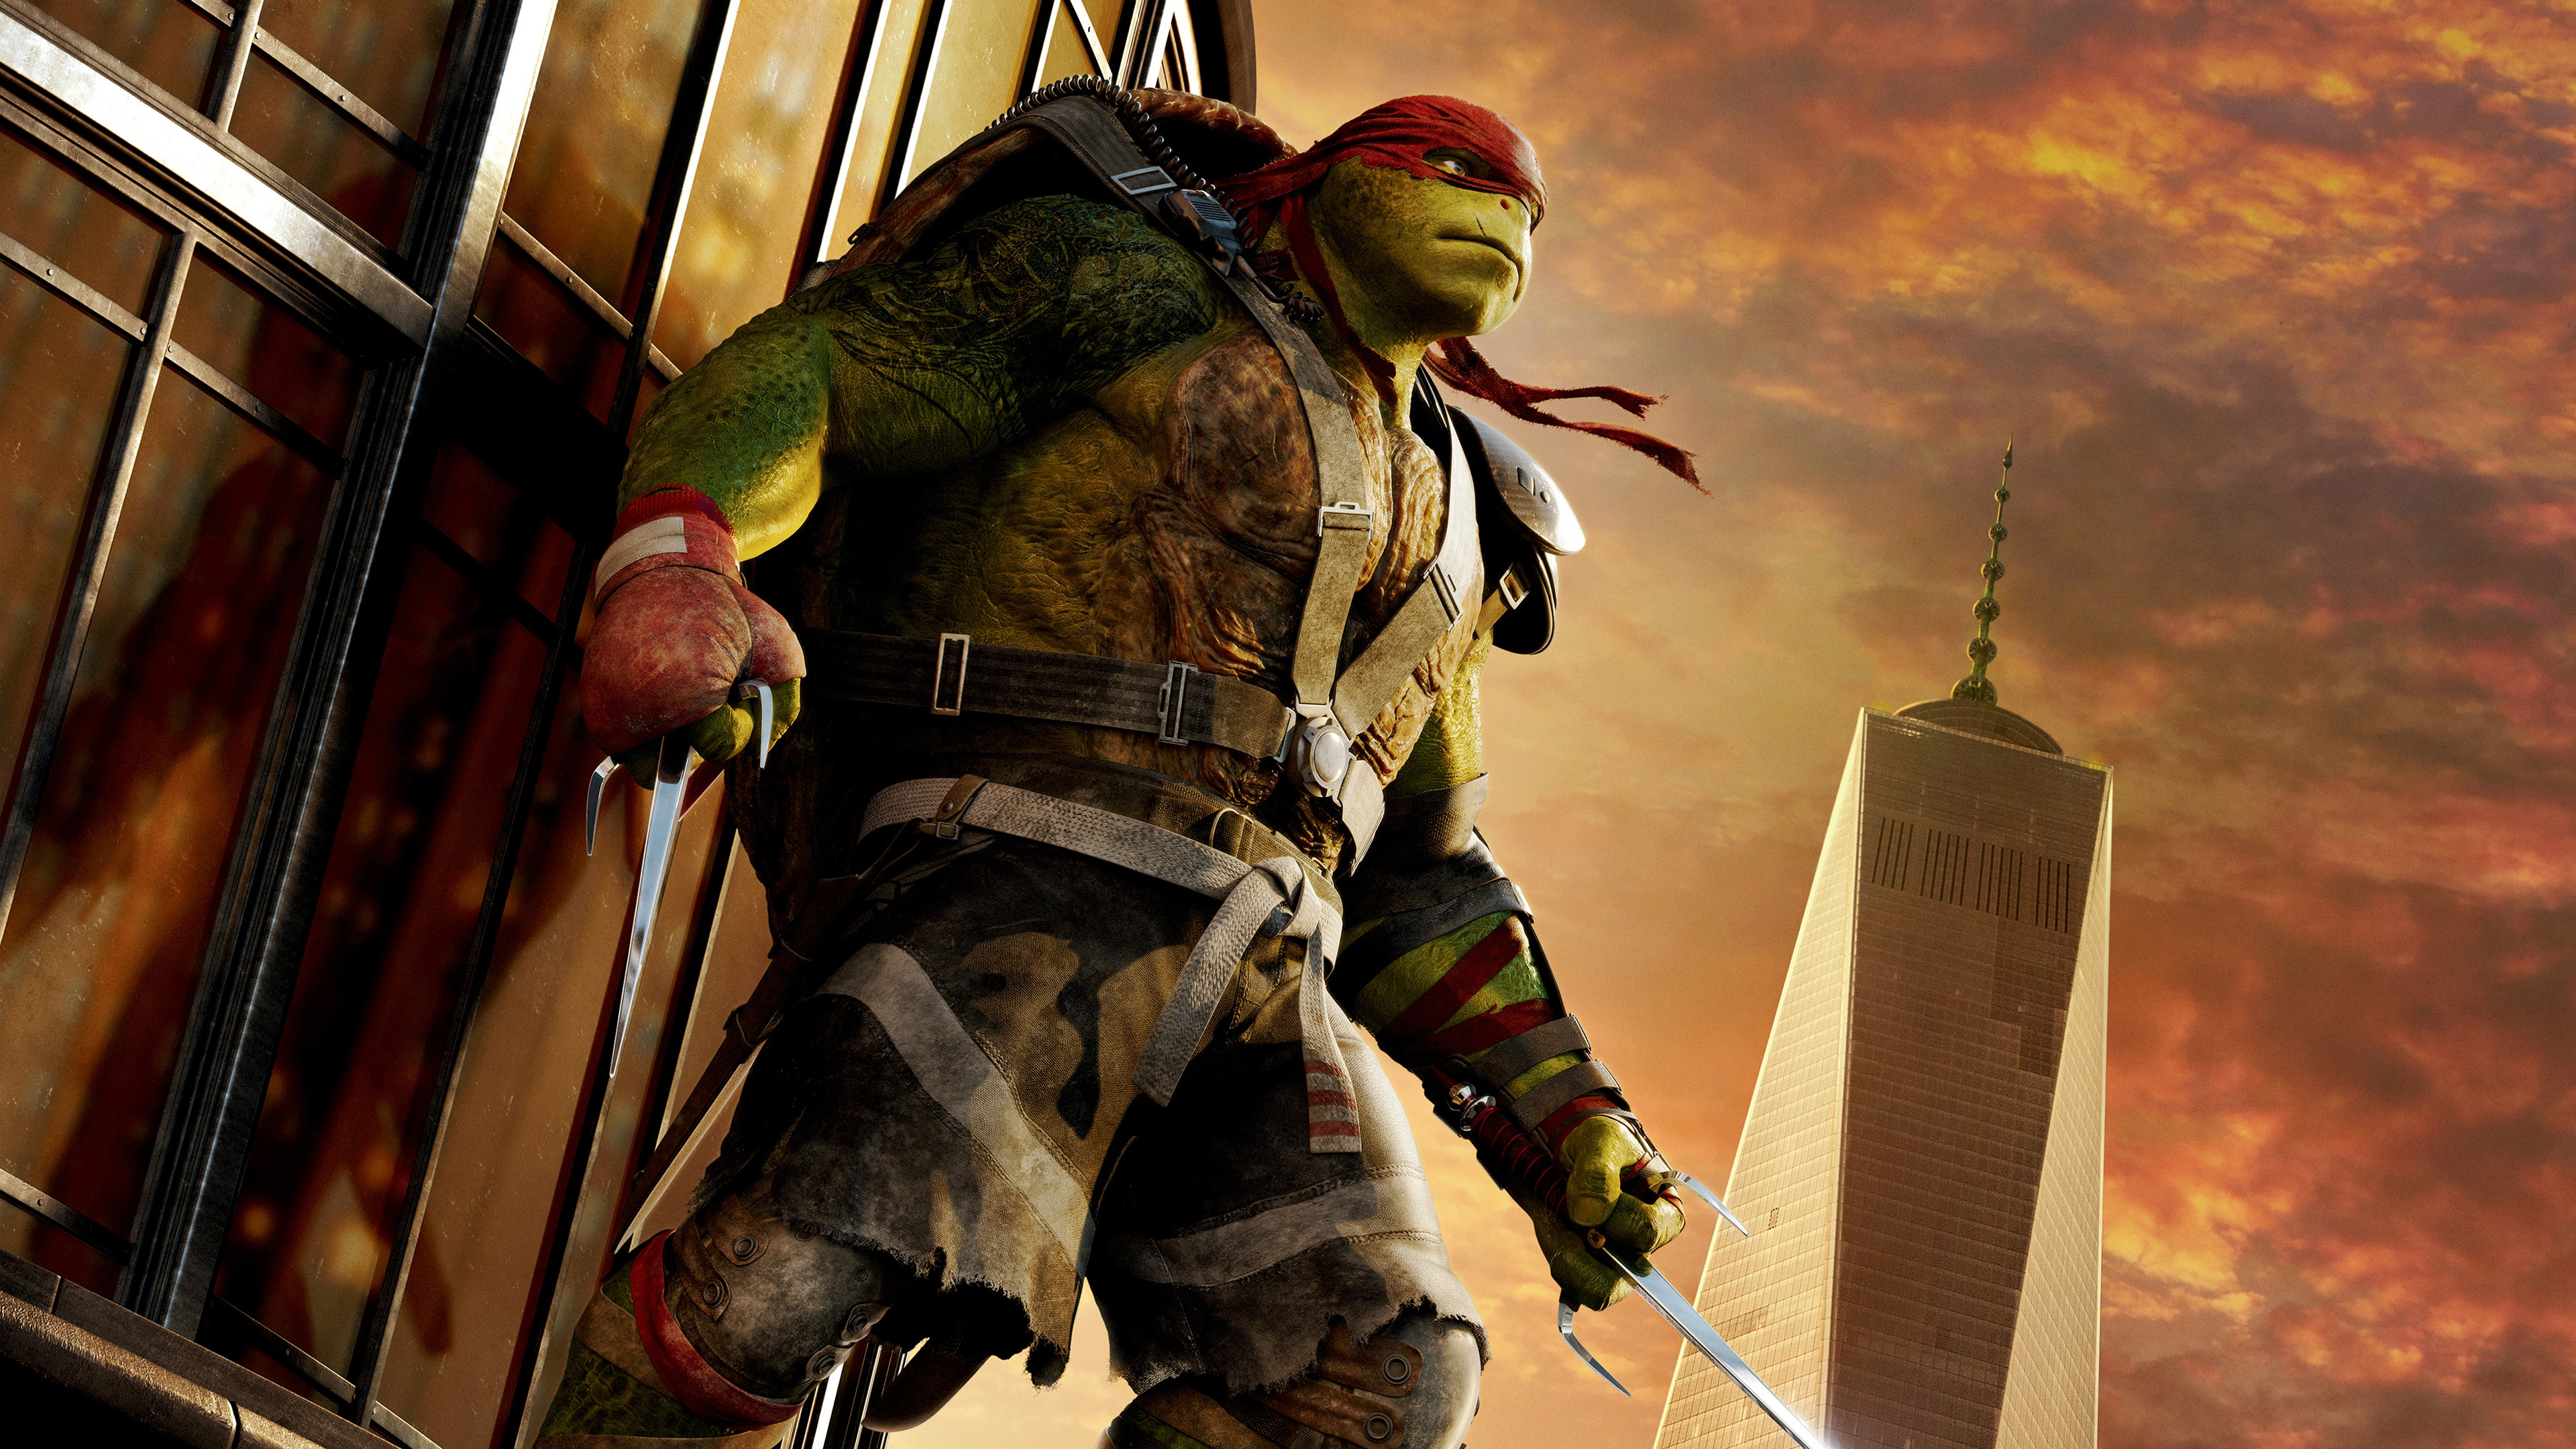 Raphael TMNT Out Of The Shadows HD Desktop Wallpaper for K